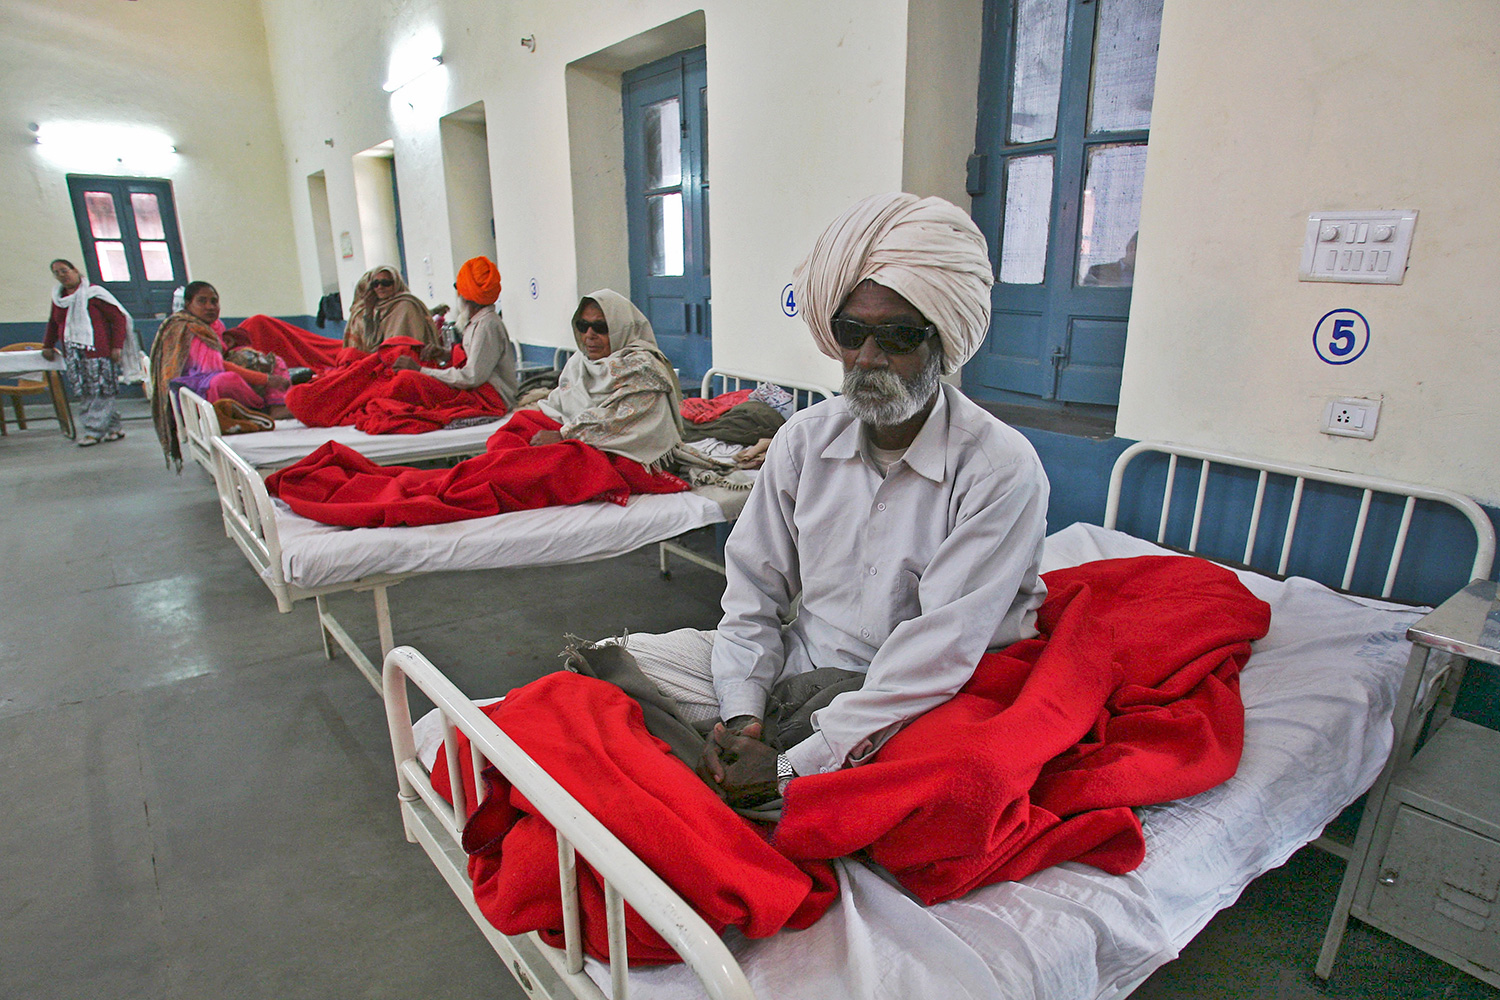 People waiting for treatment at a hospital after undergoing cataract removals from a free but shoddy eye surgery camp that caused them to lose their vision—in Amritsar, India, on December 5, 2014. The photo shows several people sitting on hospital beds. One man in the foreground is wearing dark glasses. REUTERS/Munish Sharma